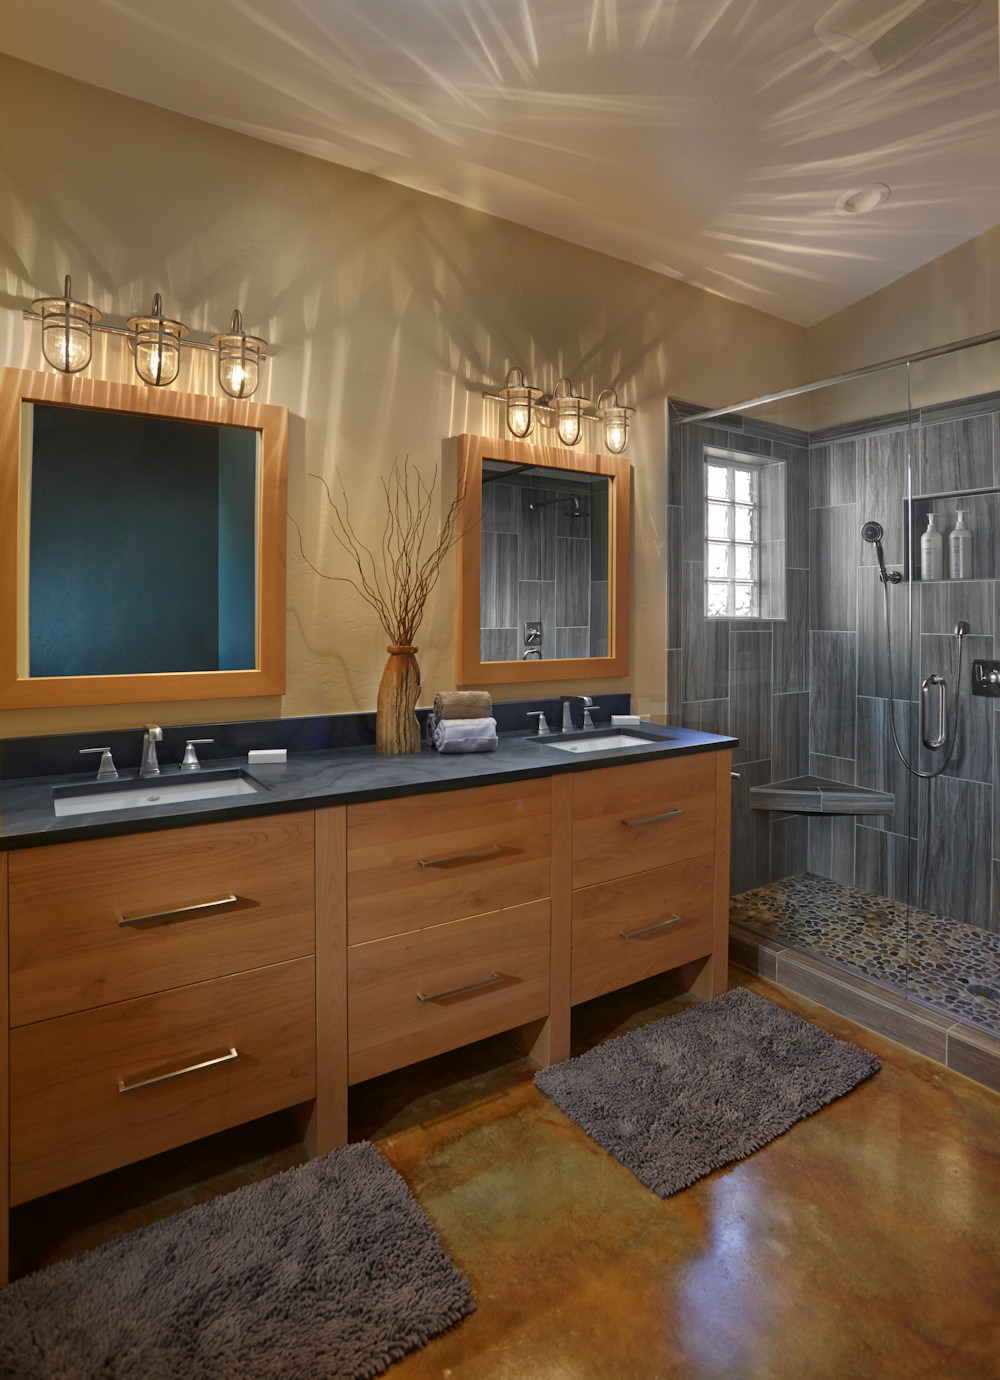 Bathroom Remodeling Tucson bathroom cabinets tucson az - interior design